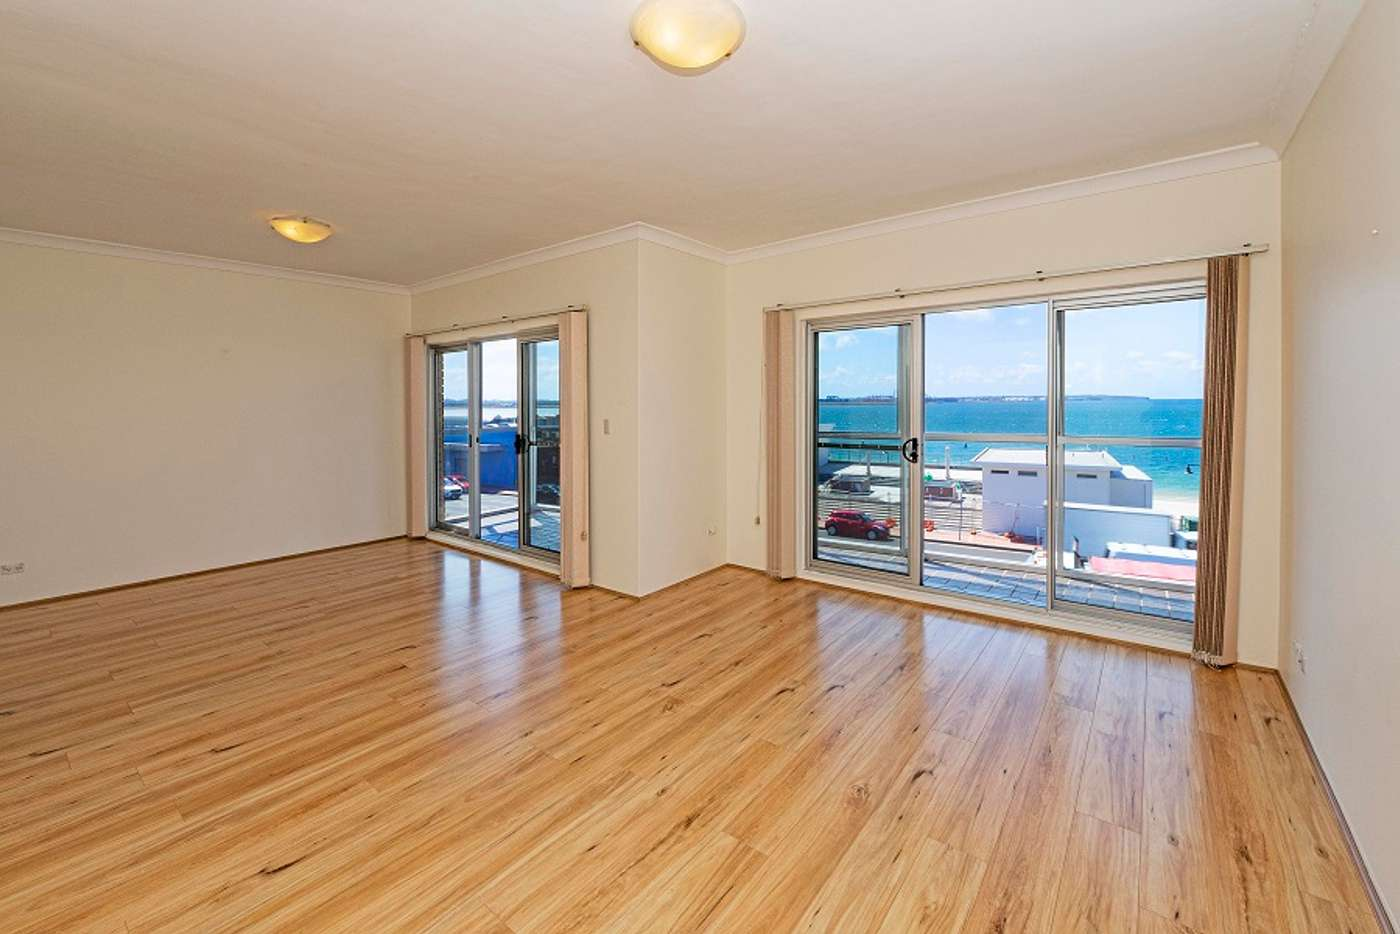 Main view of Homely apartment listing, 99 The Grand Parade, Brighton-le-sands NSW 2216